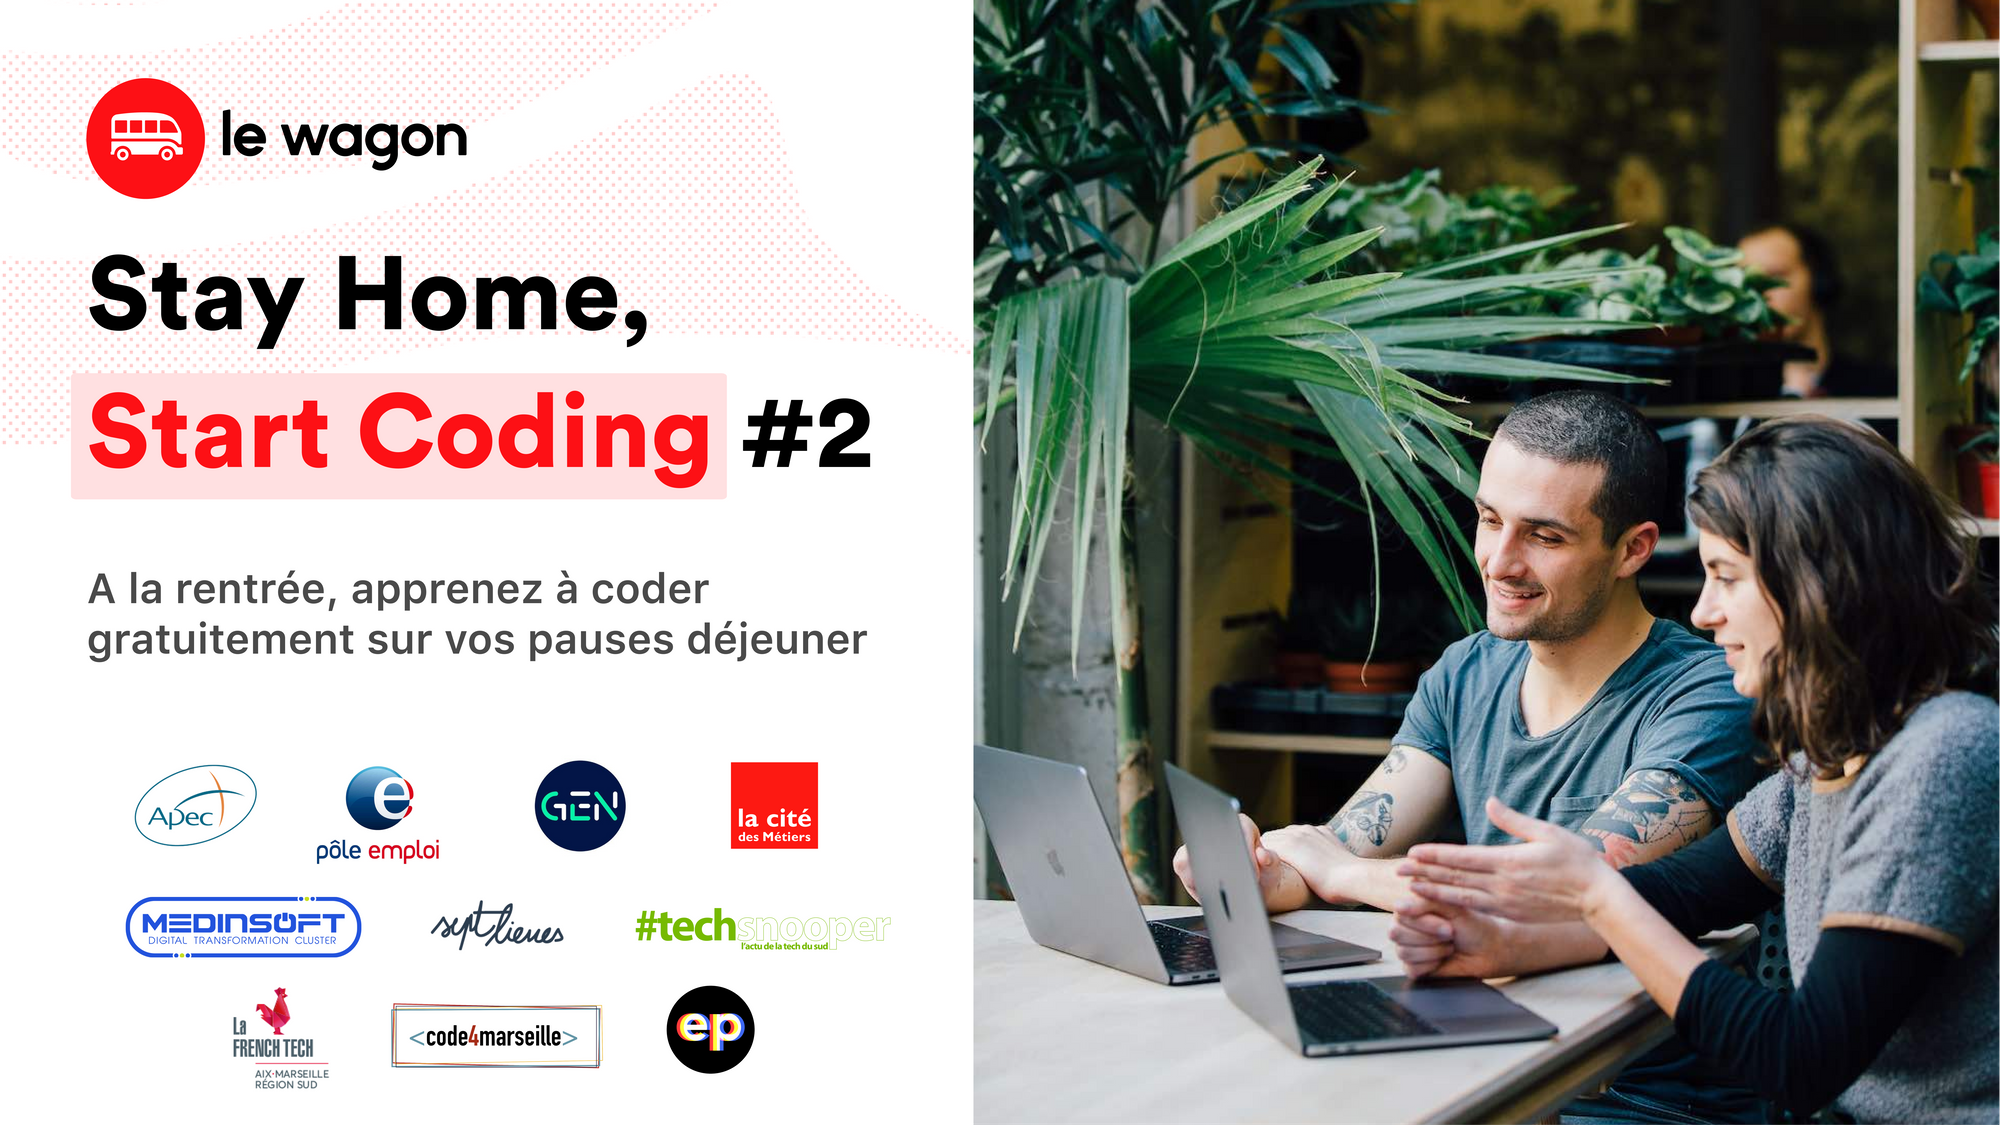 Stay Home Start Coding